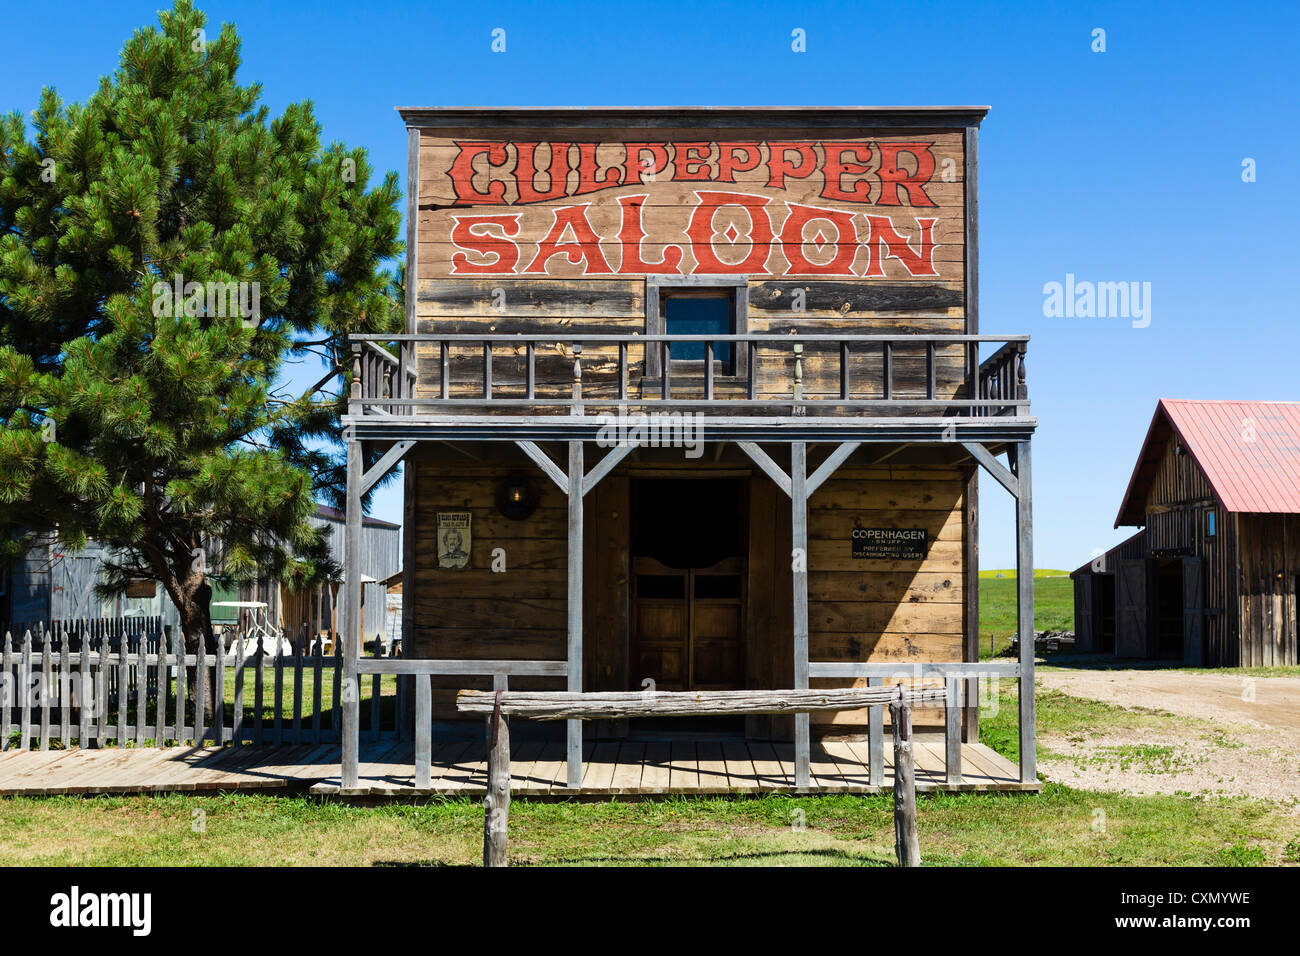 Saloon on Main Street in '1880 Town' western attraction in Murdo, South Dakota, USA - Stock Image